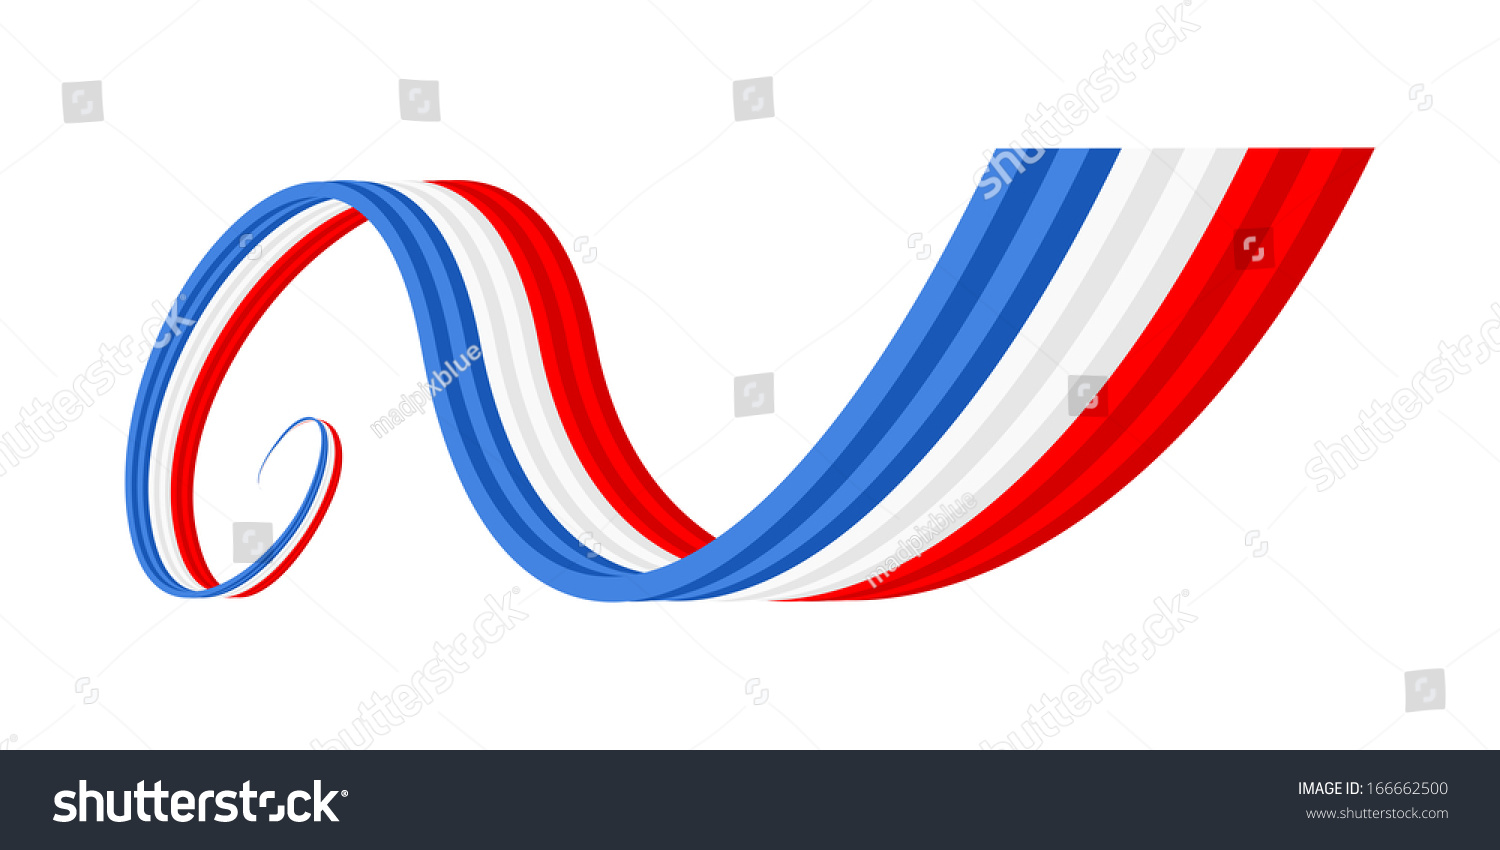 Abstract Blue White Red Waving Ribbon Flag Stock Vector